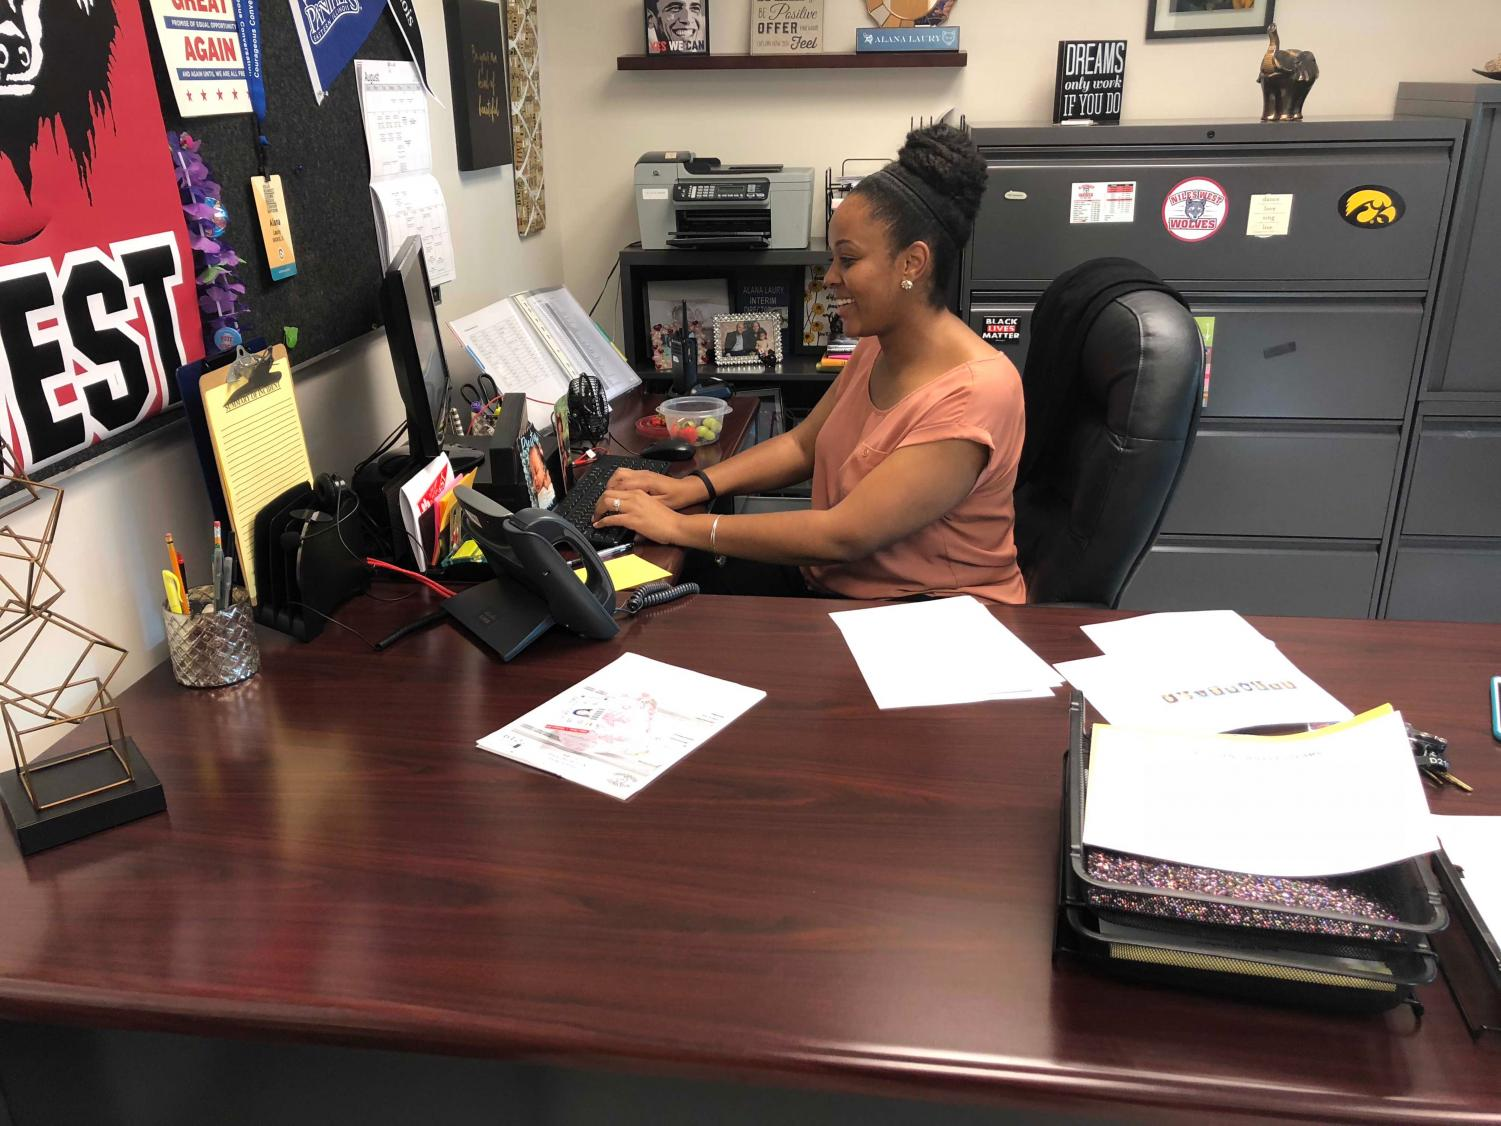 Dean of students Alana Laury hard at work in her office.